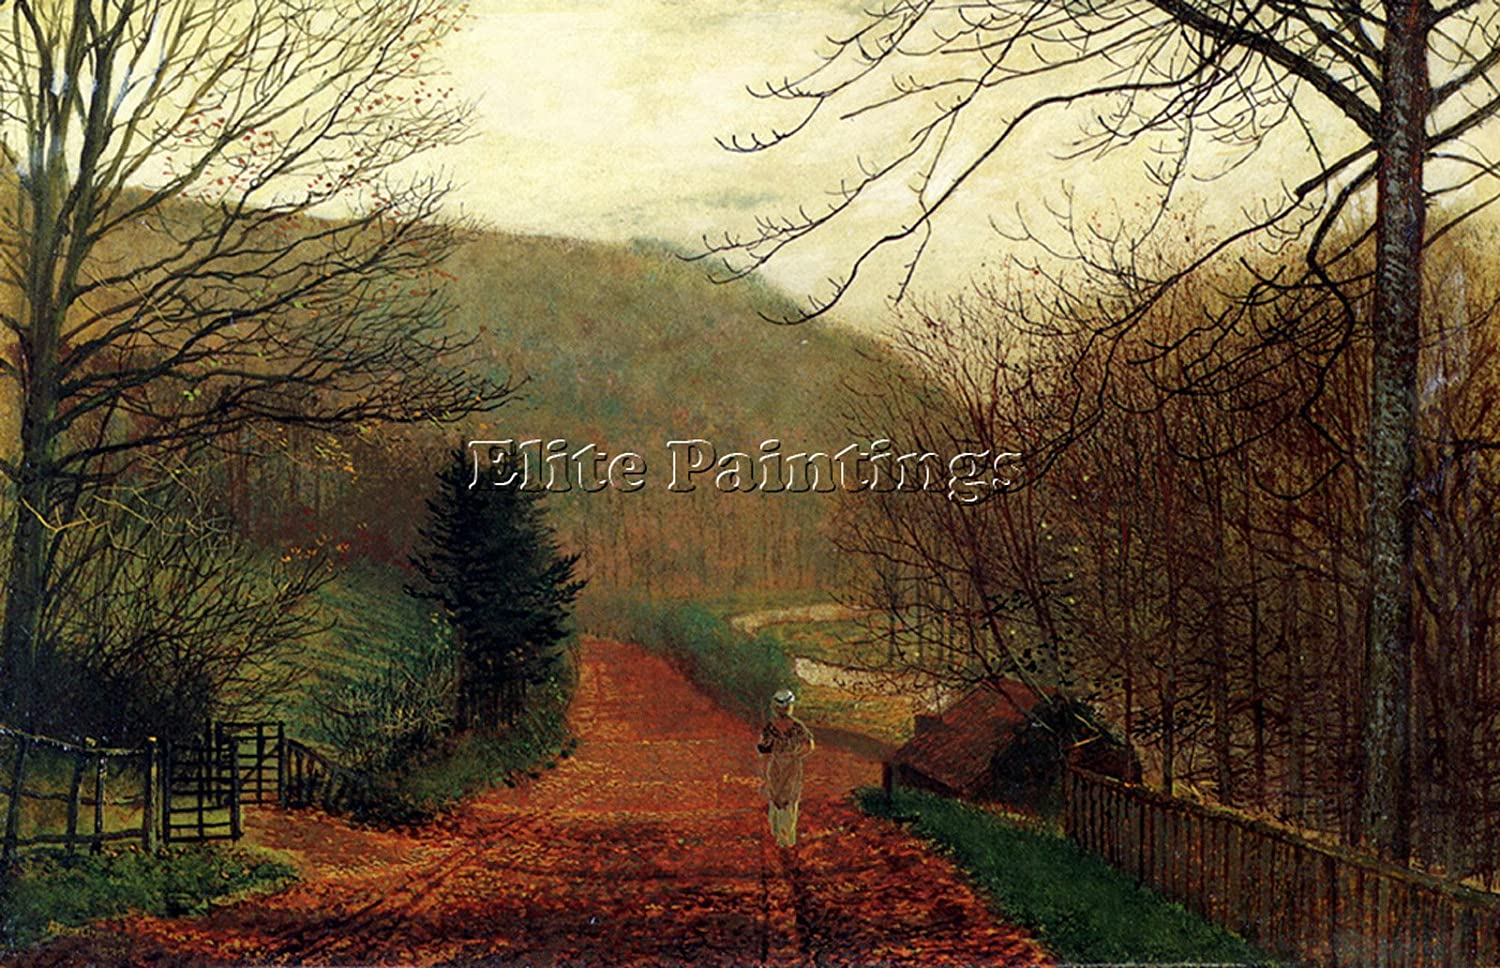 Classical oil painting John Atkinson Autumn landscape forest Hand painted